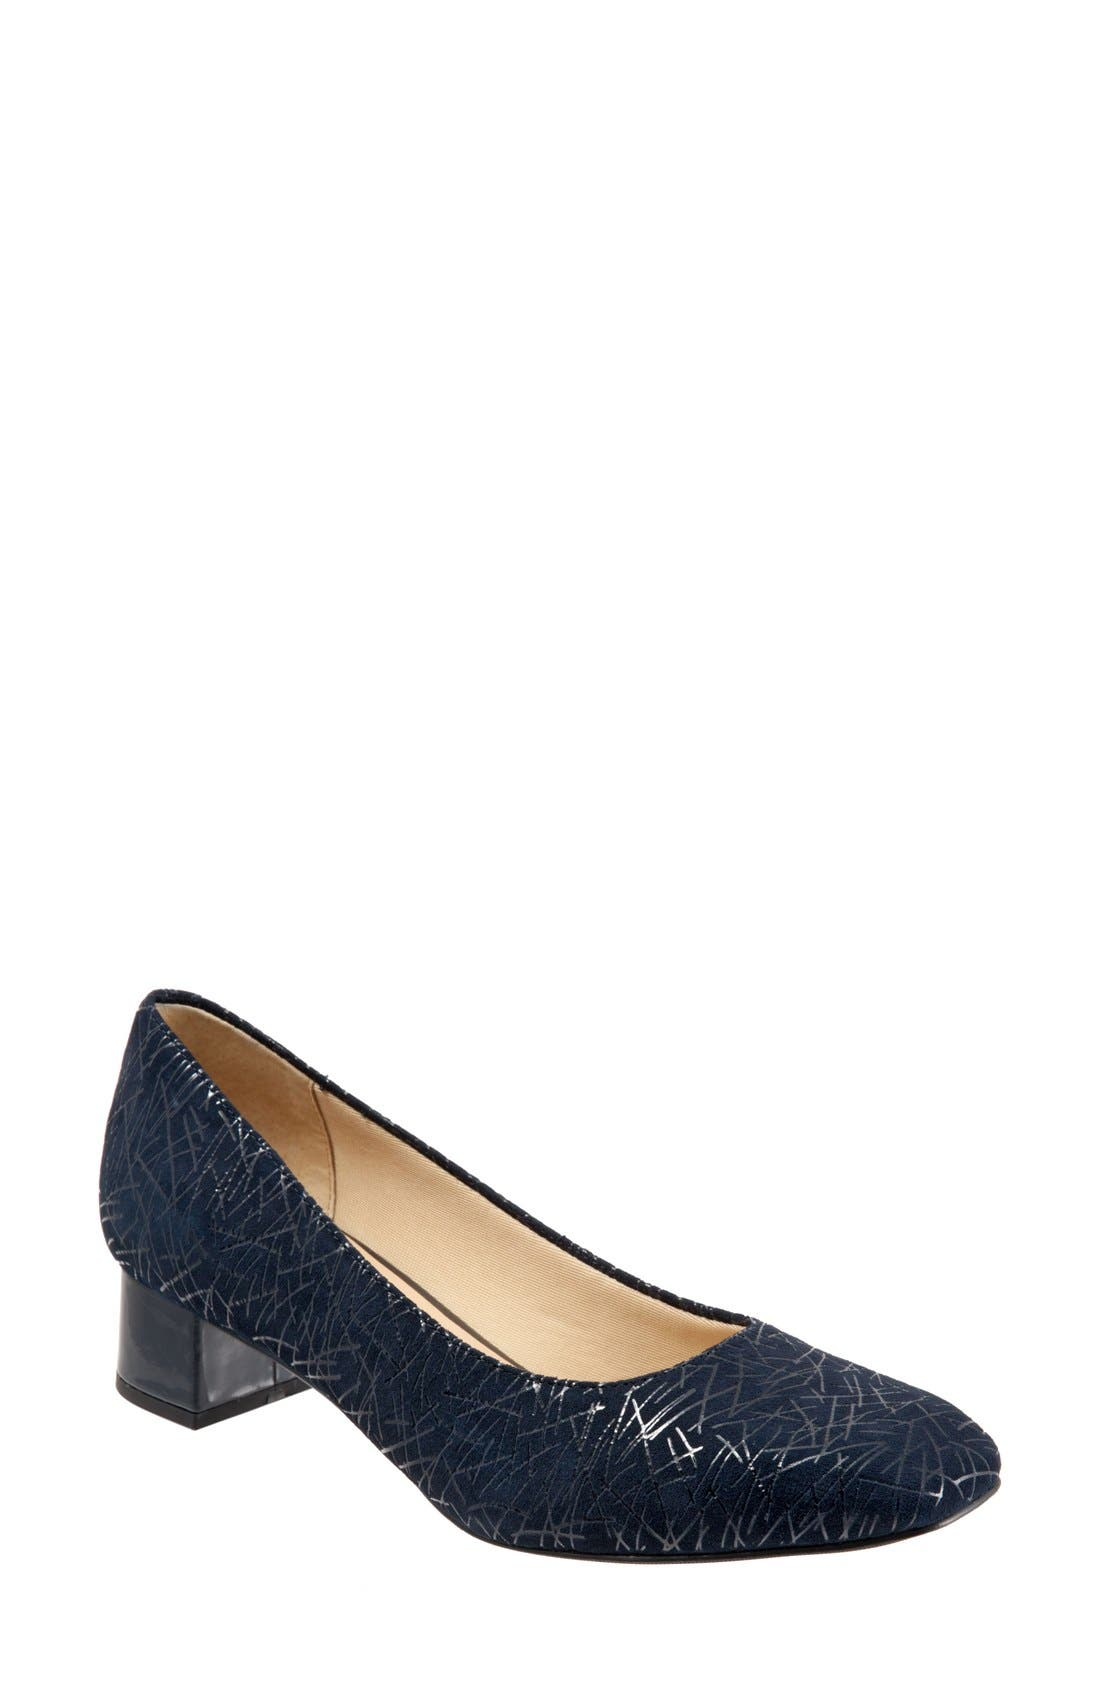 'Lola' Pump,                             Main thumbnail 1, color,                             Navy Embossed Leather